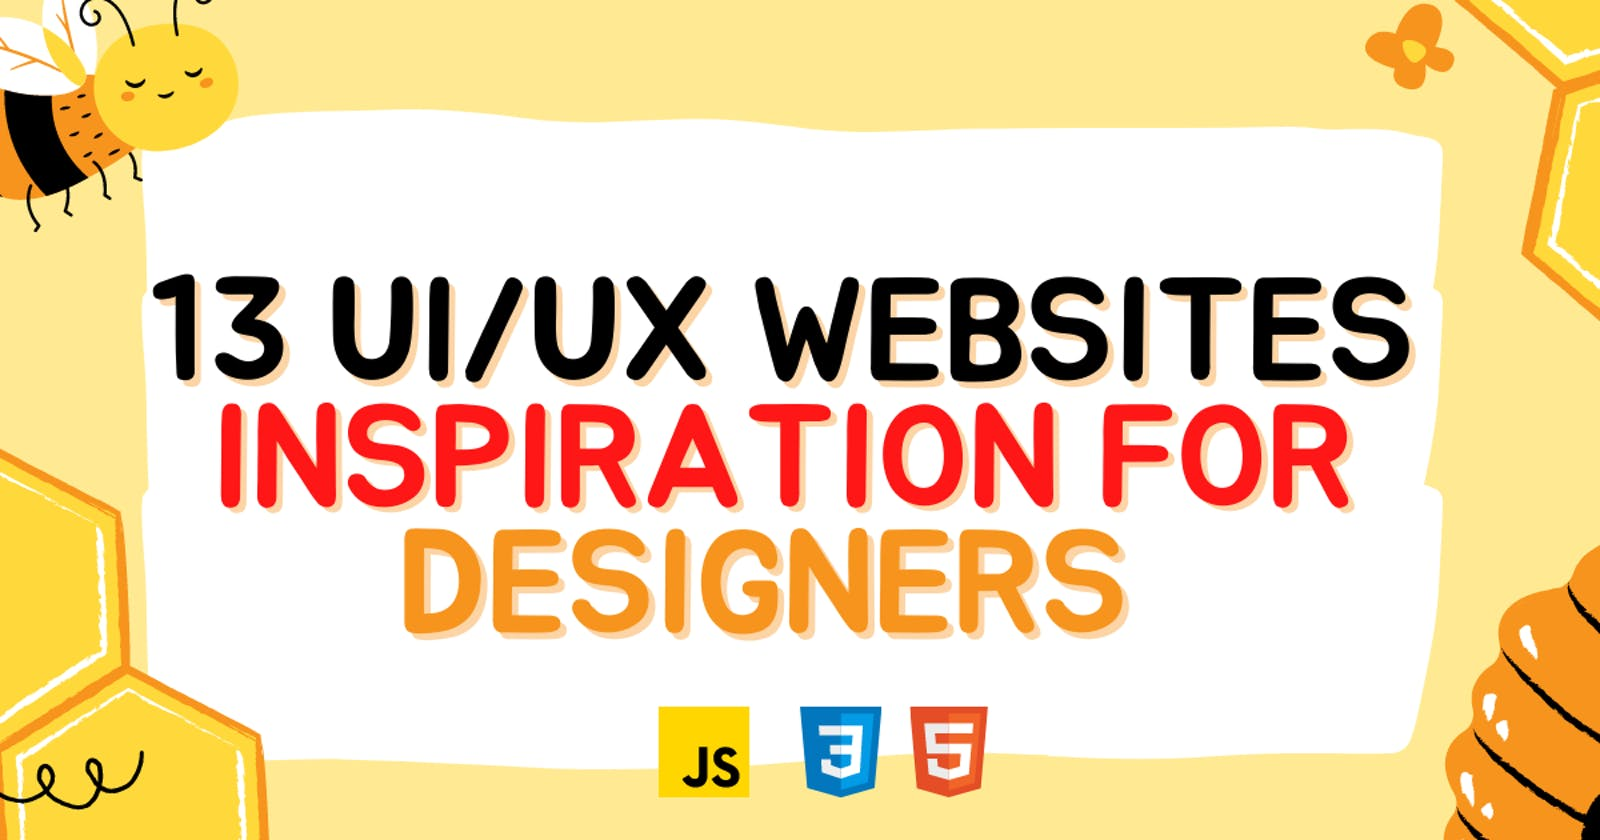 13 Ultimate UI/UX website inspiration for Designers and Developers